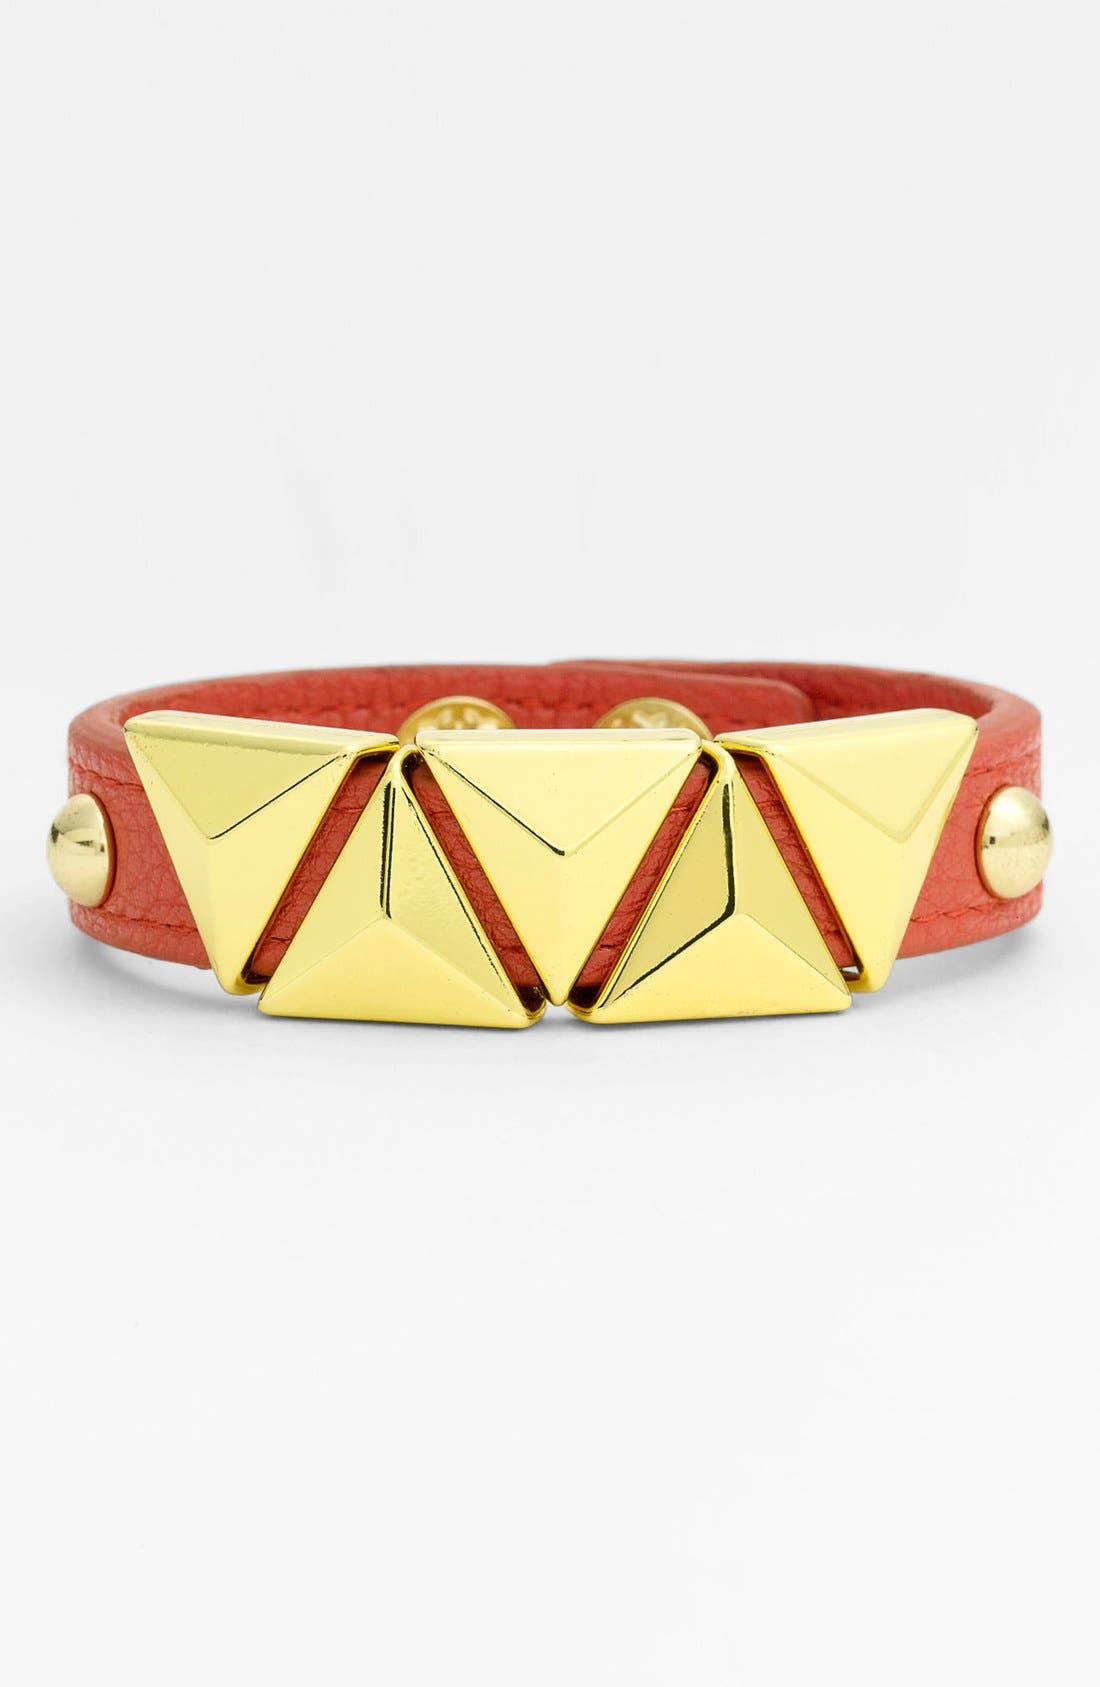 Alternate Image 1 Selected - BCBGeneration 'Triangle Pyramid' Faux Leather Bracelet